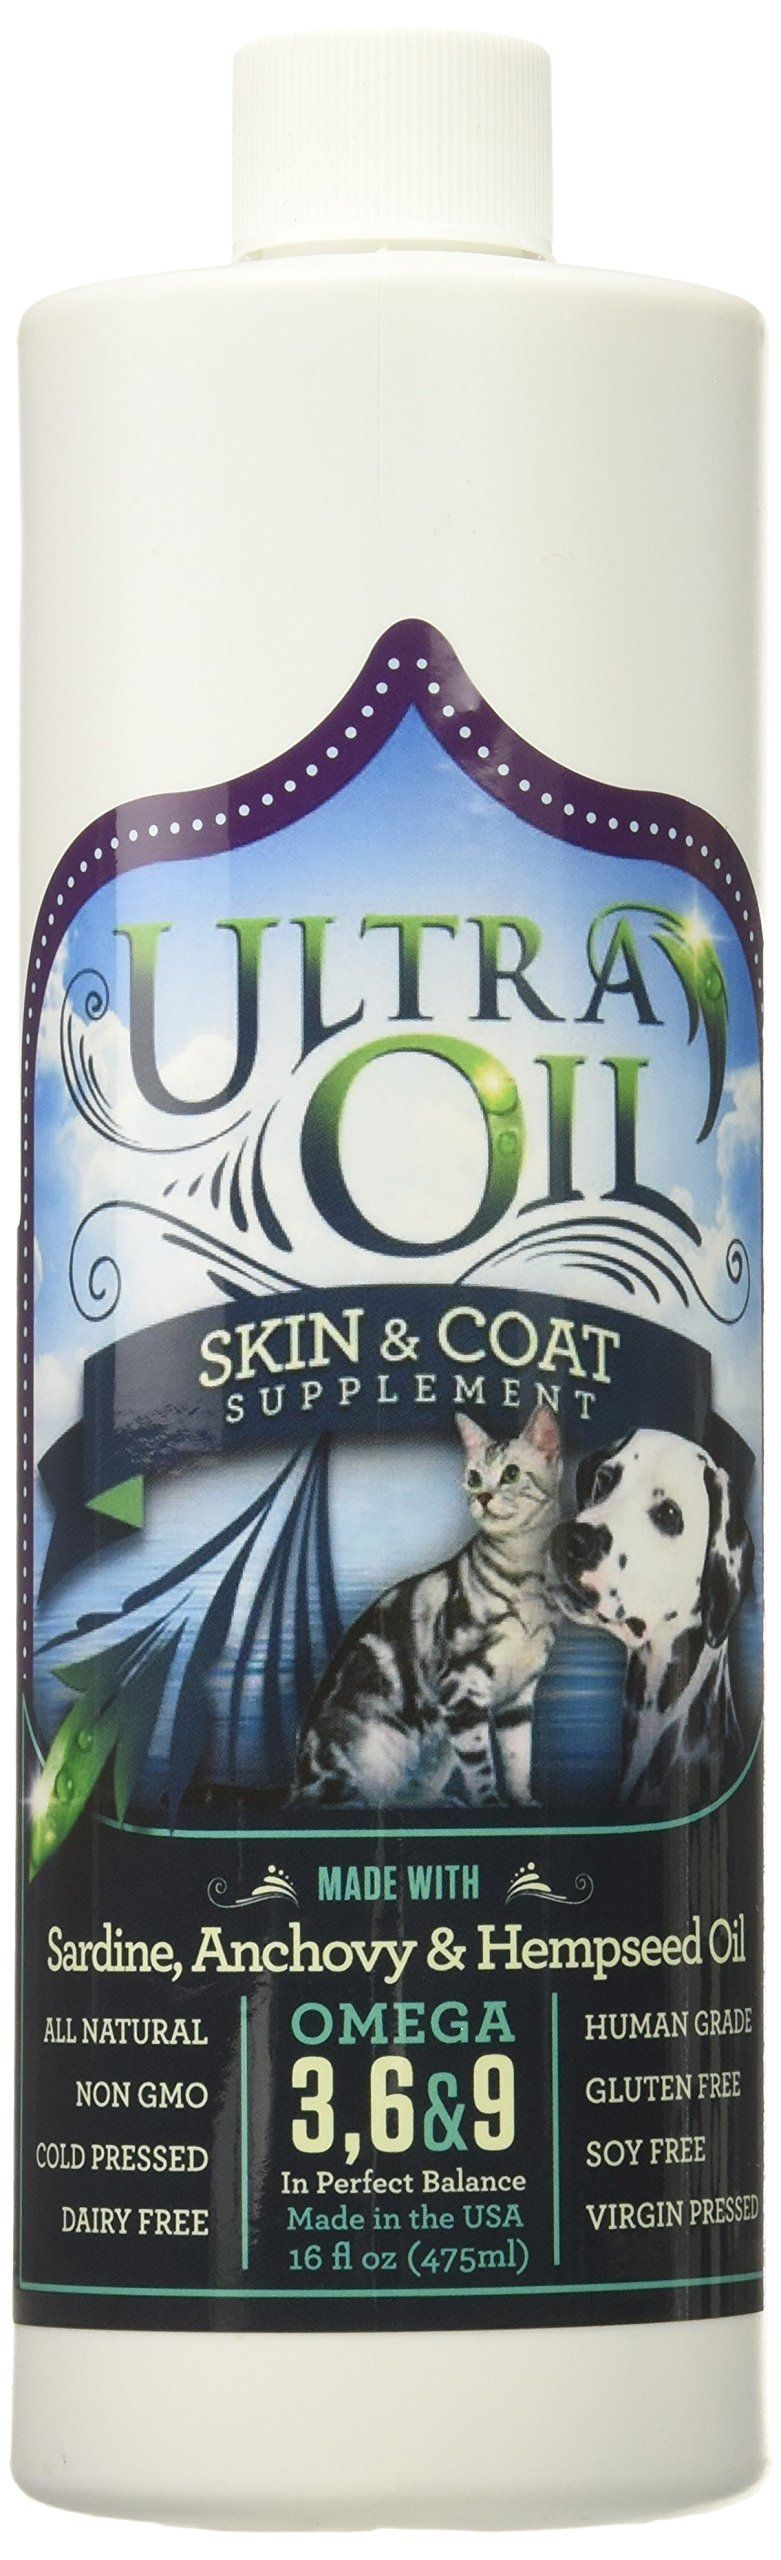 Ultra Oil Skin and Coat Supplement For Dogs and Cats With